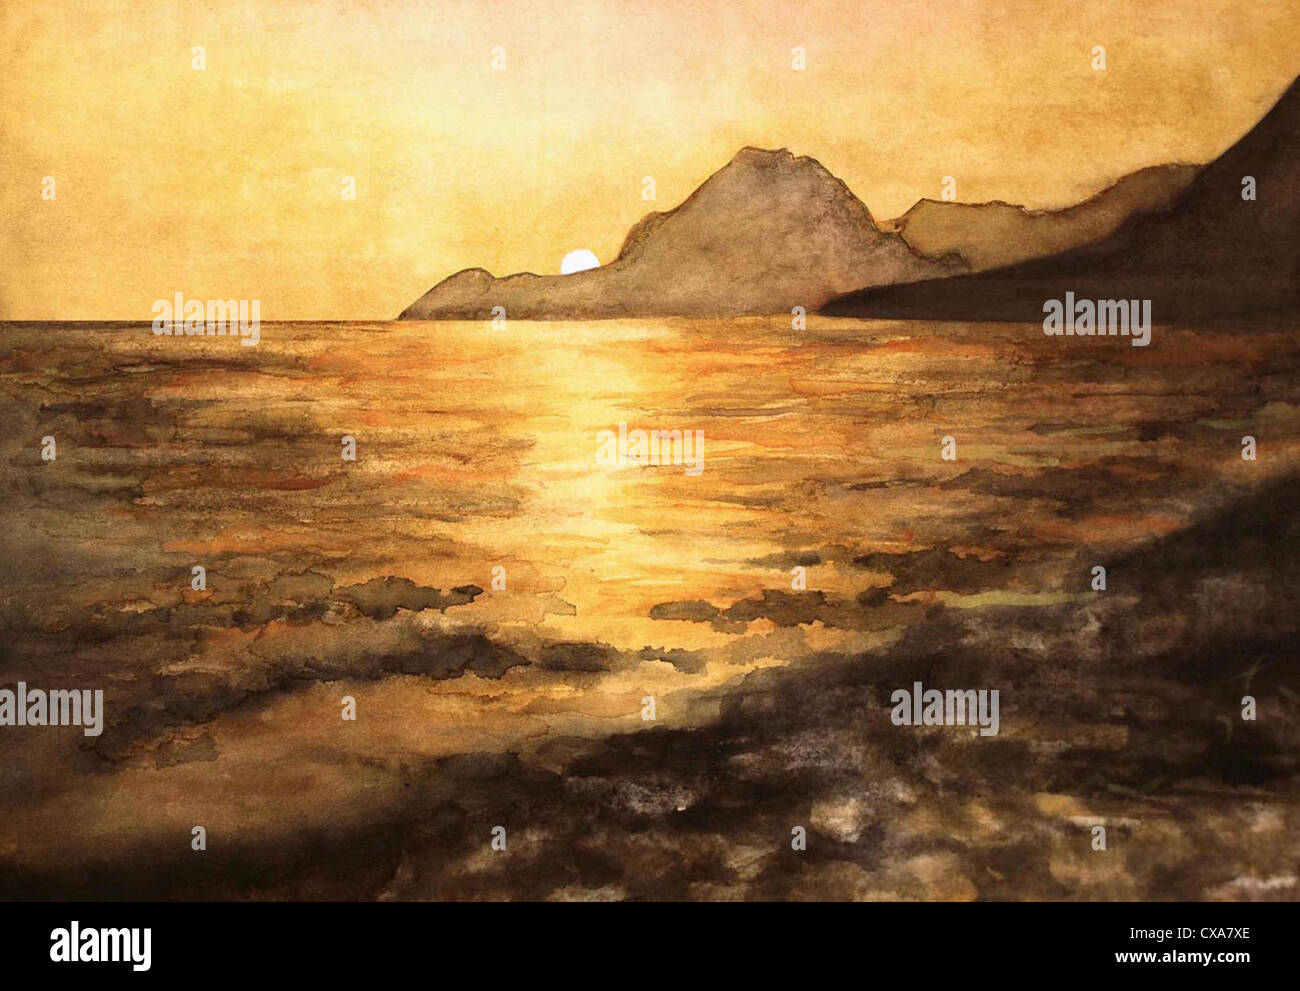 sunset, mediterran sunset, mediterran sundown, sundown, sunset painting, orange, orange sun, sun sea, beach, sun, - Stock Image